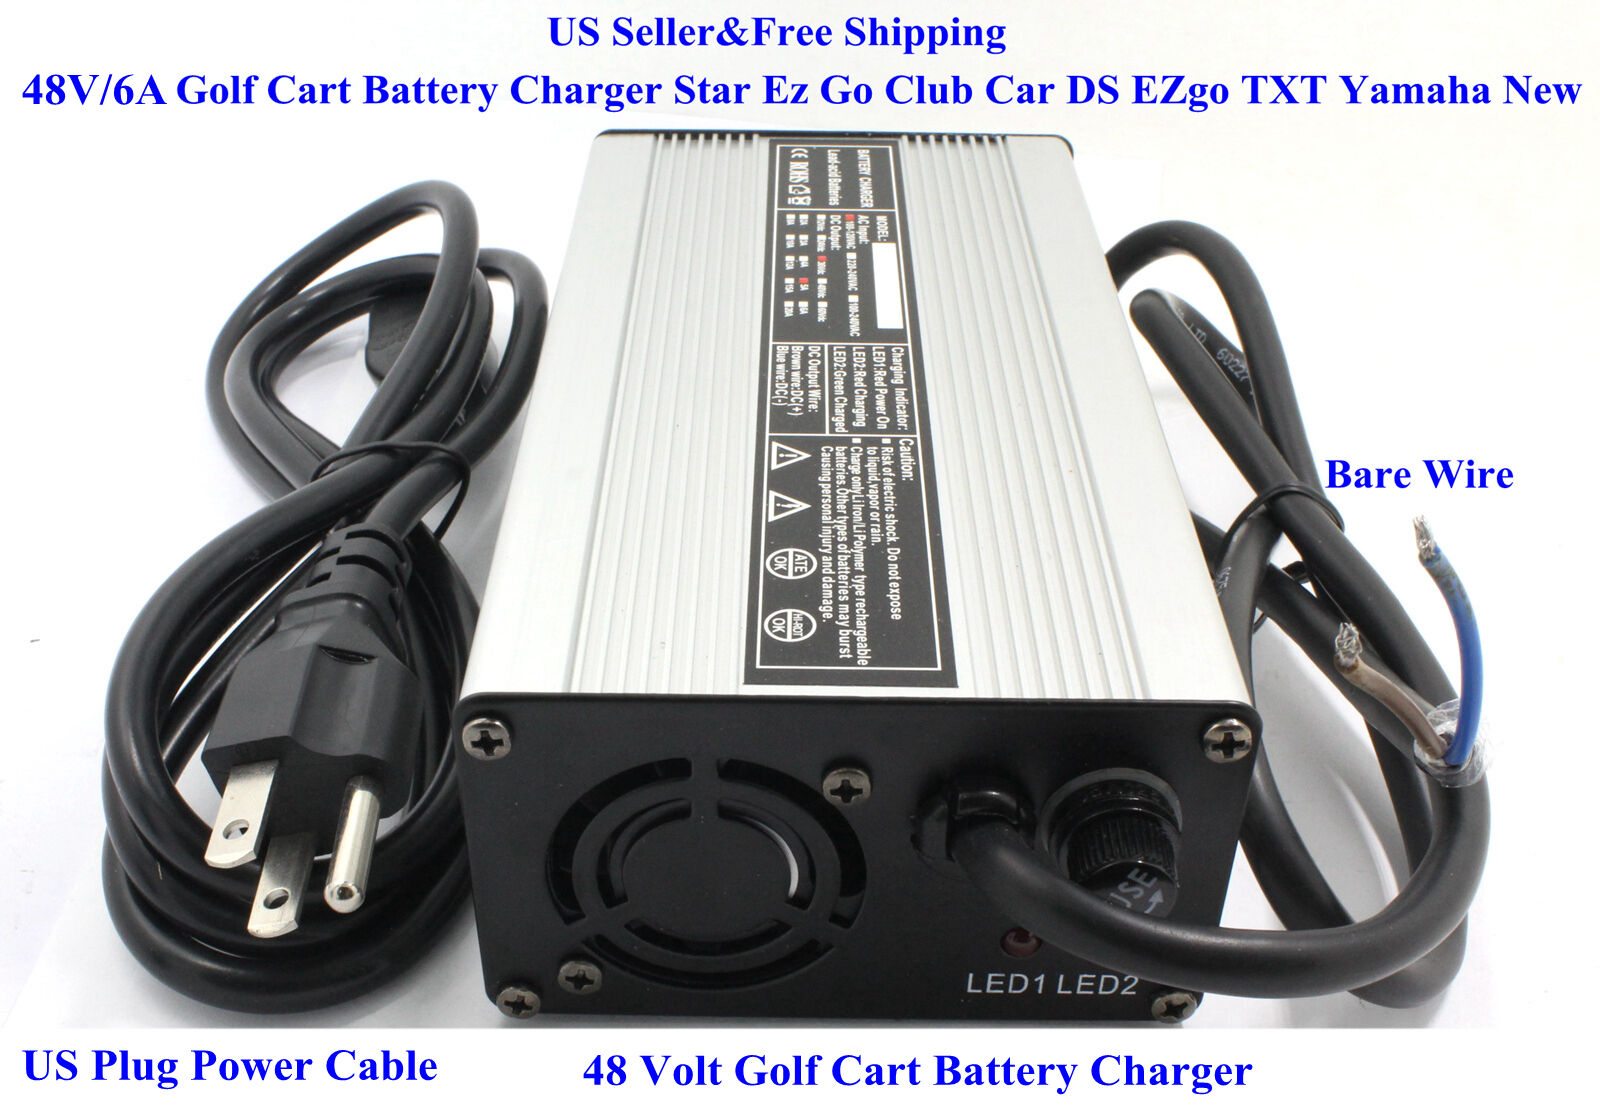 New 48 Volt Golf Cart Battery Charger 6A Star Ez Go Club